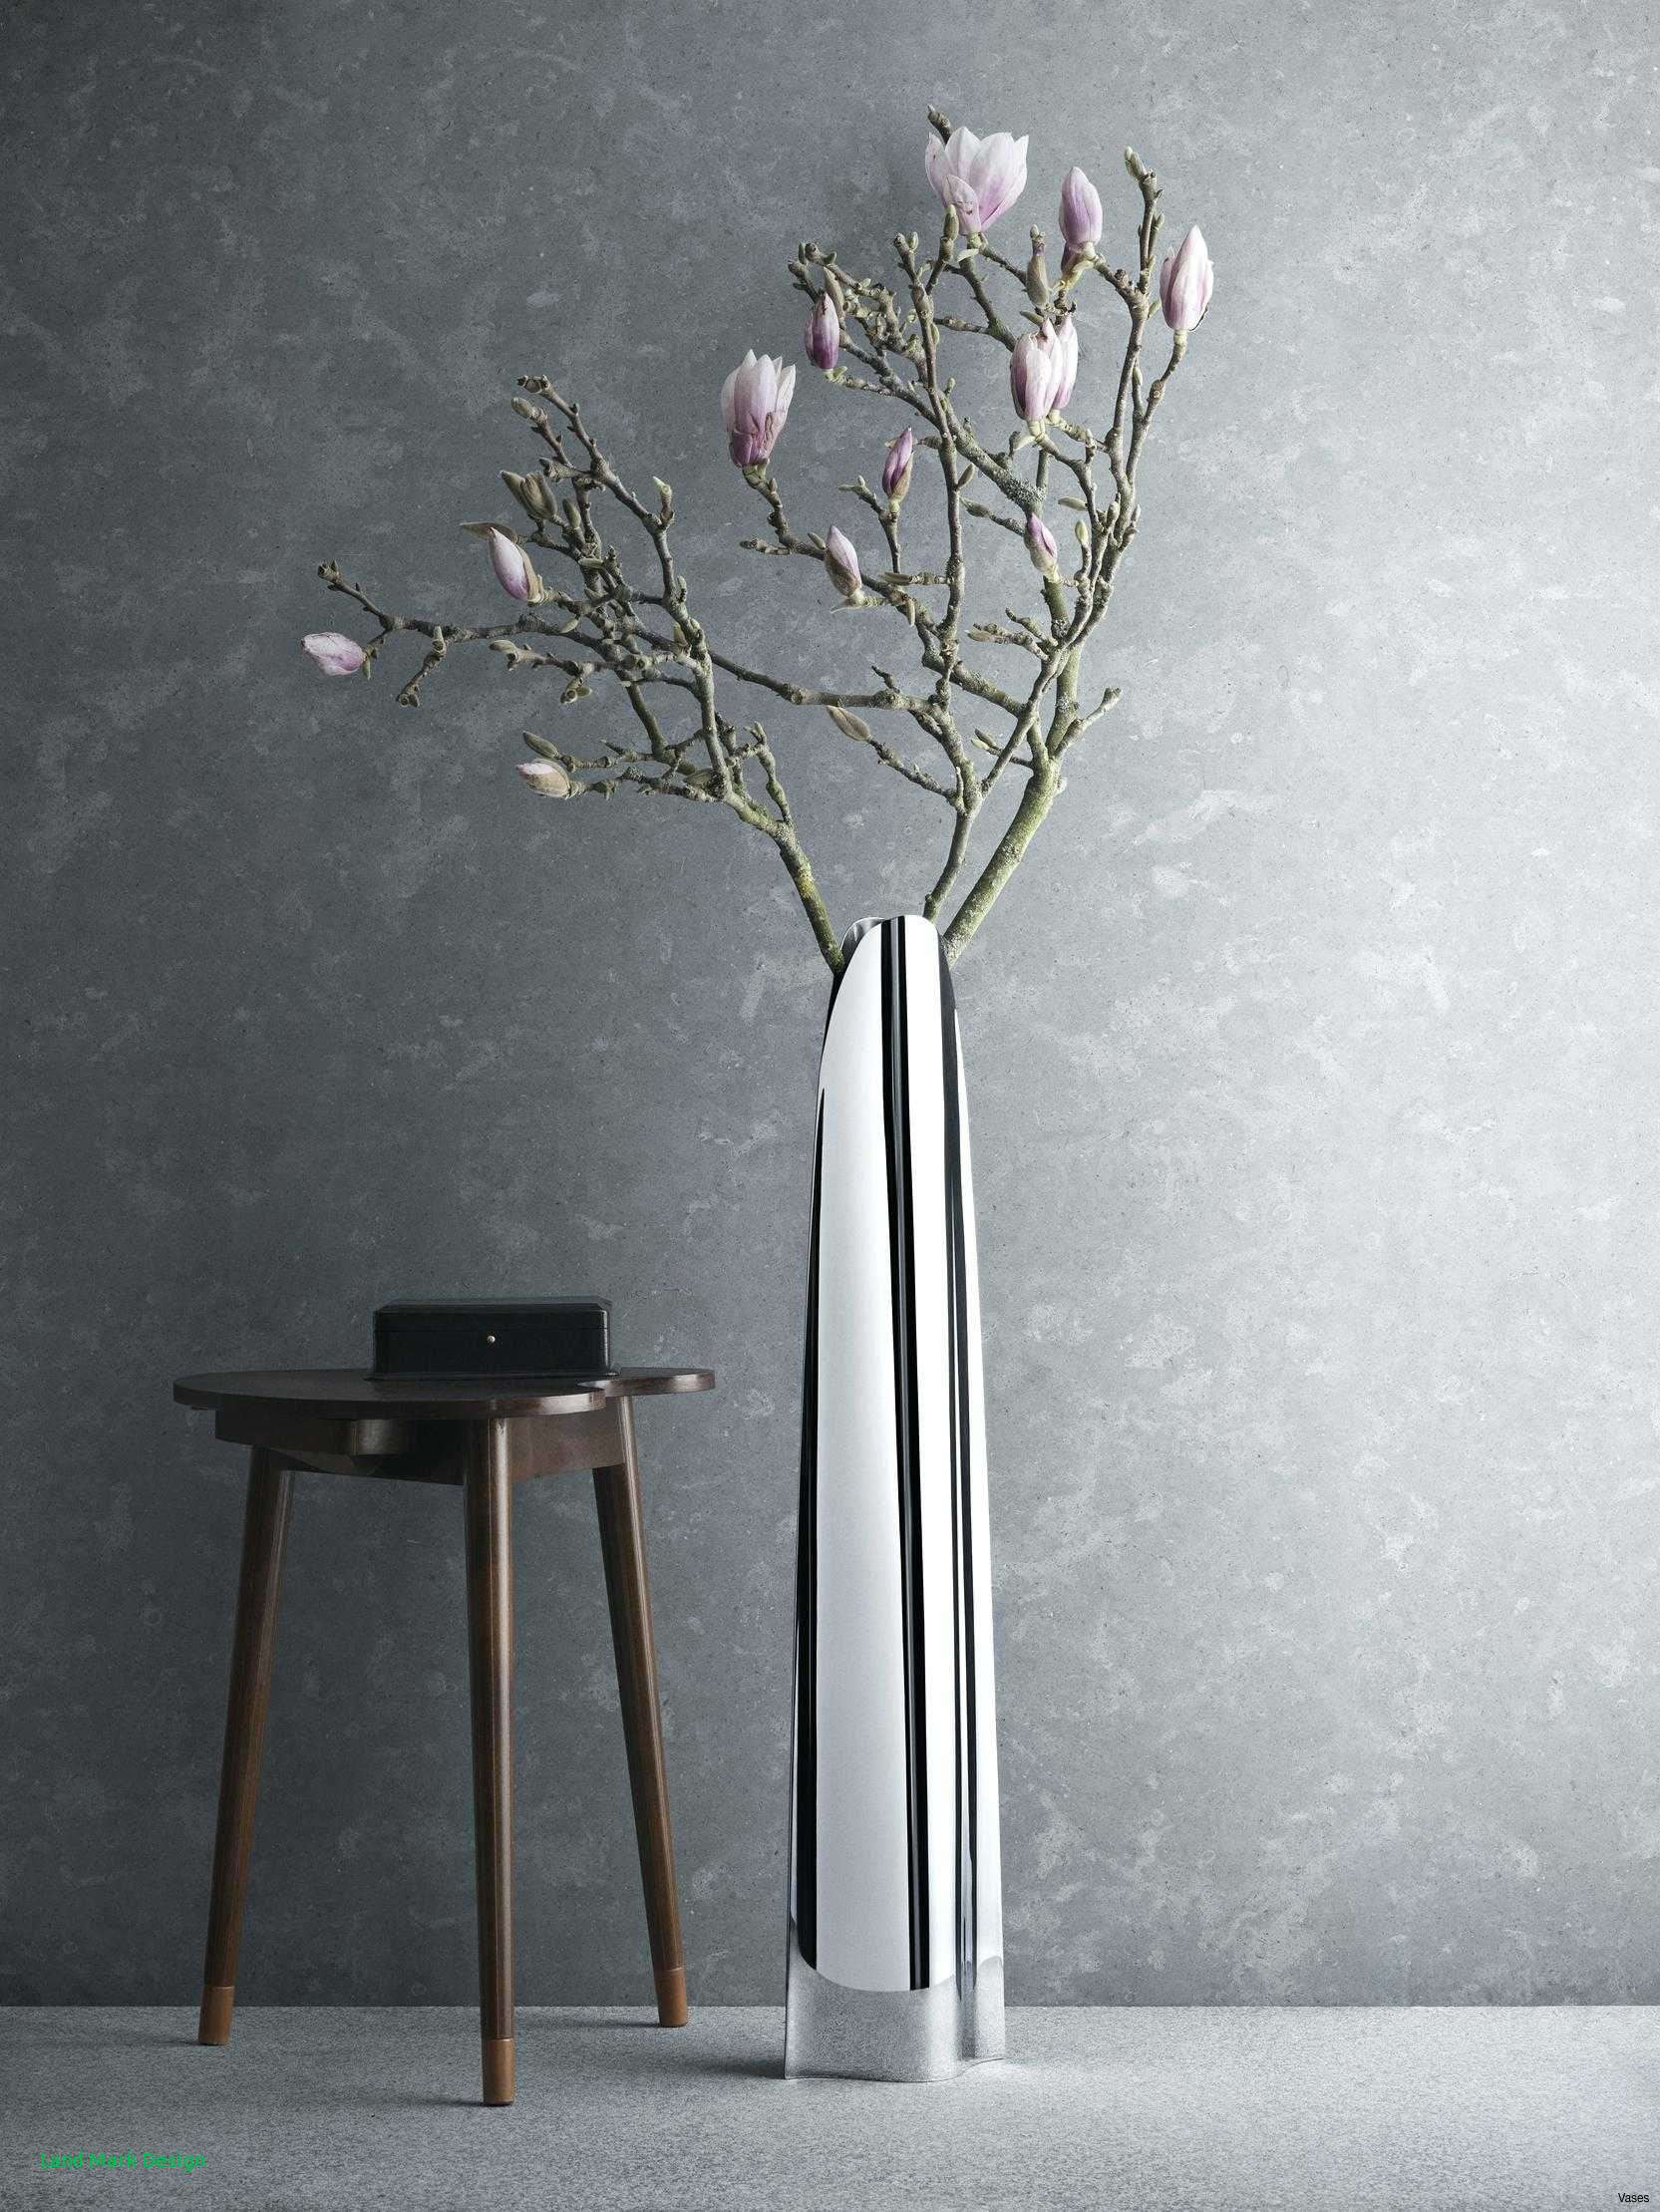 artificial branches for vases of floor vase branches image tall vase with branches design vases within floor vase branches image tall vase with branches design